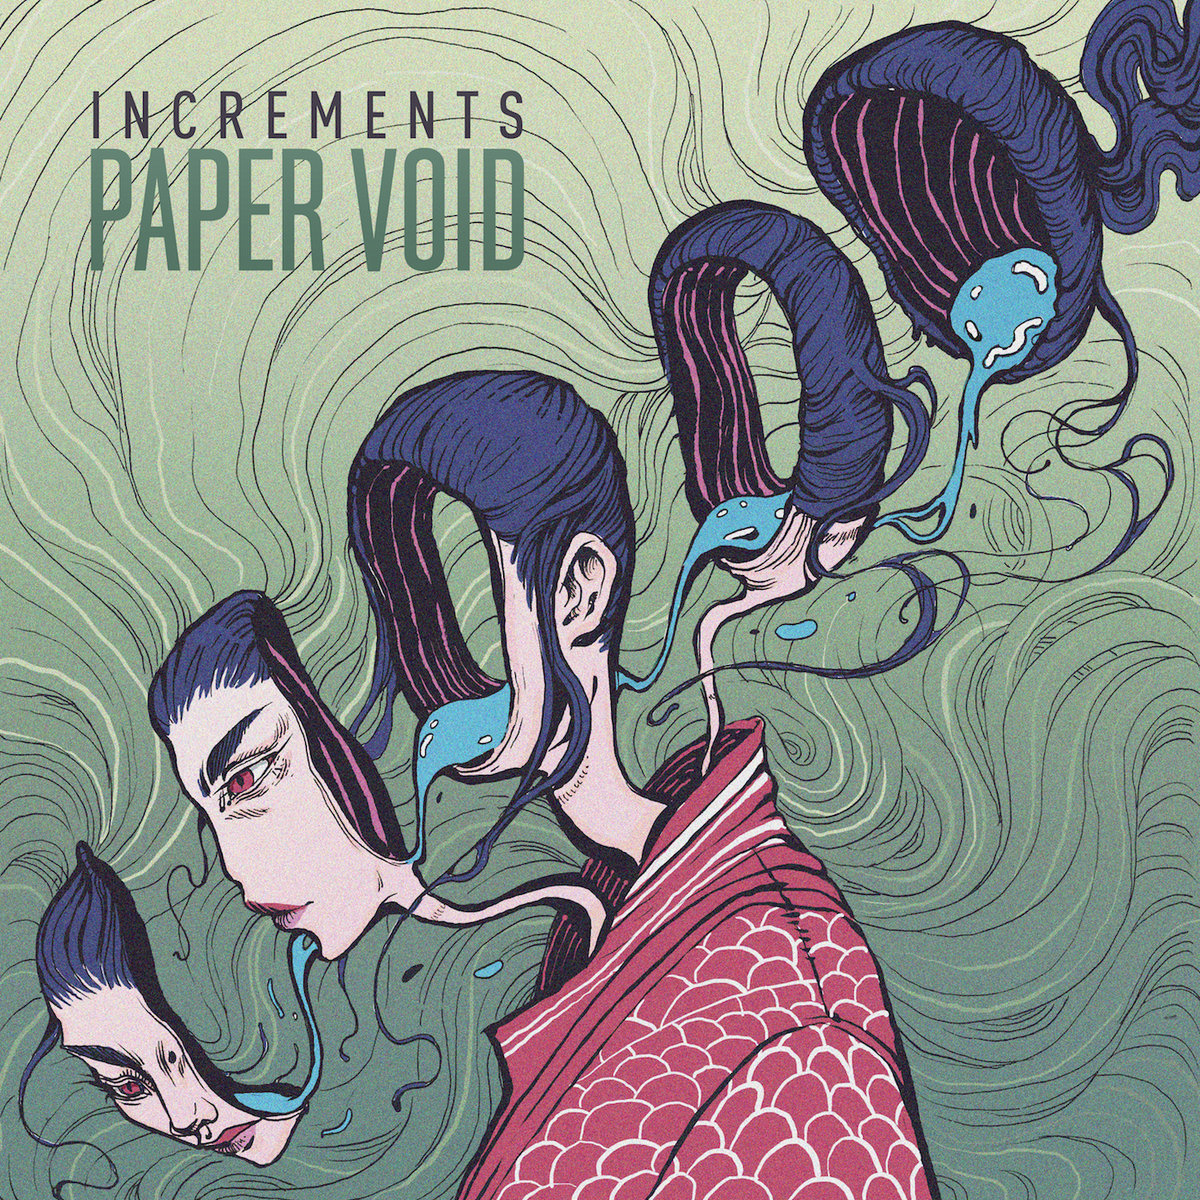 Source: Paper Void's Bandcamp